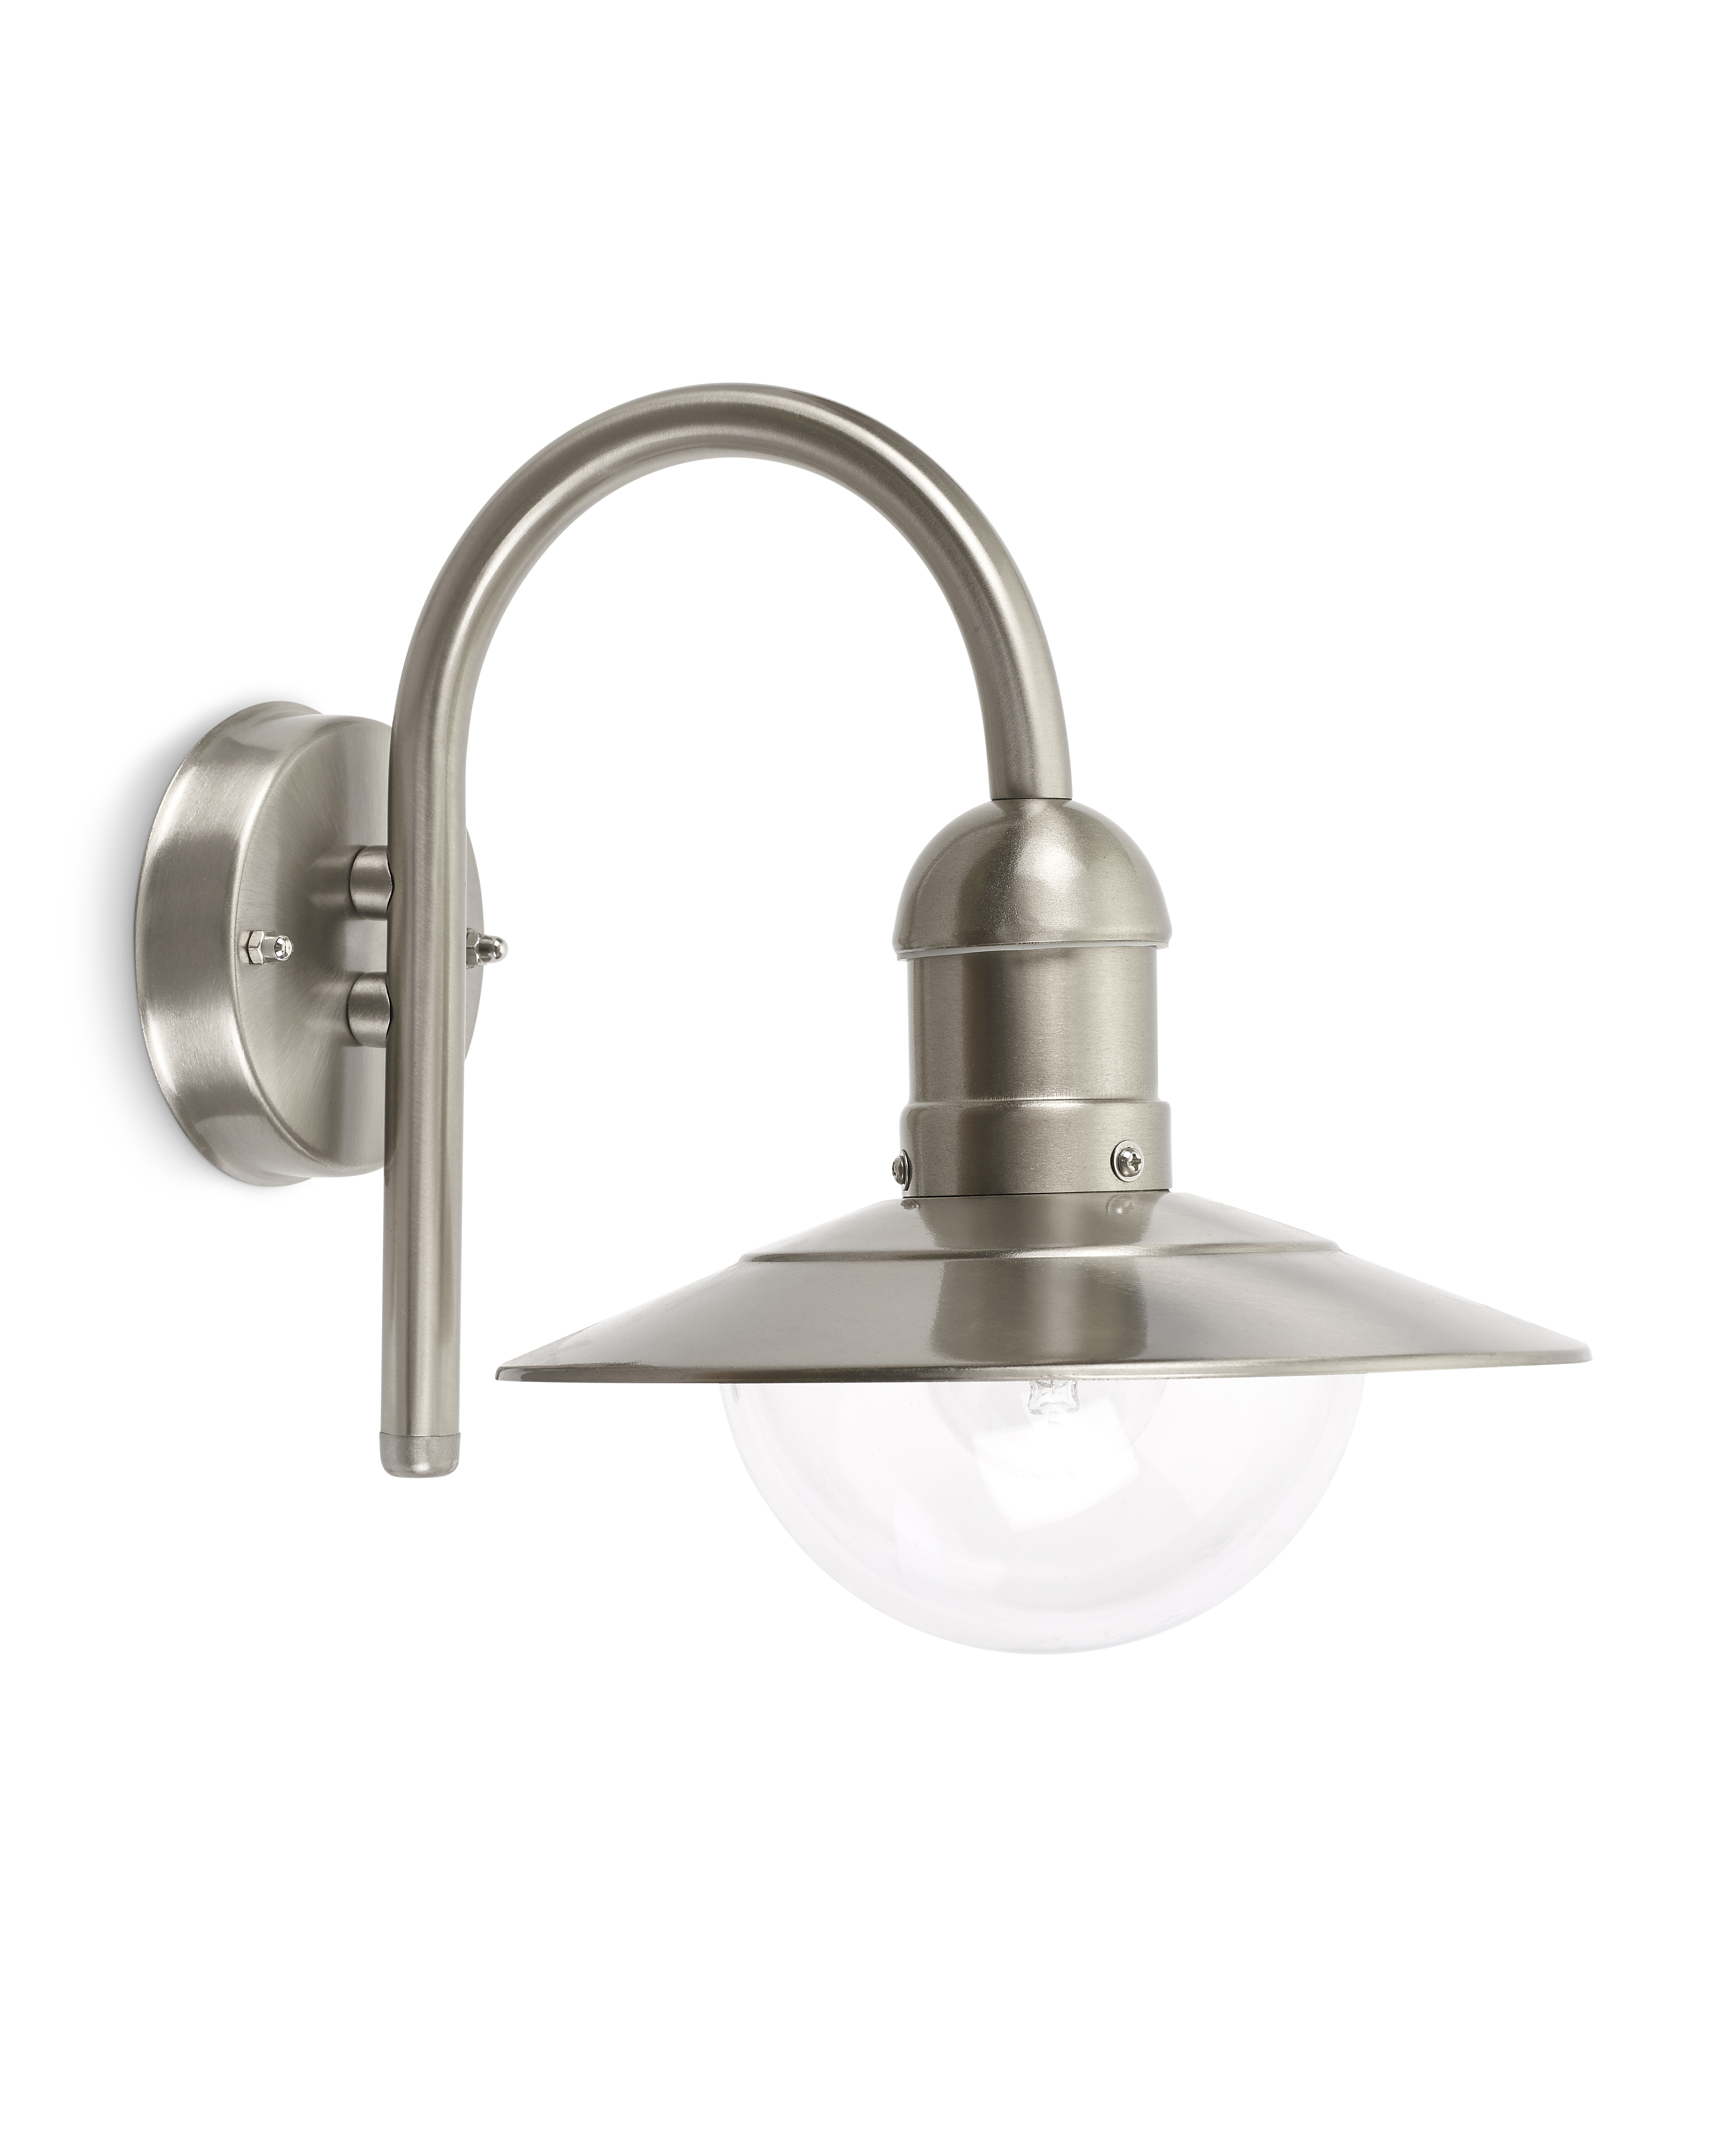 Wall light E27 stainless steel